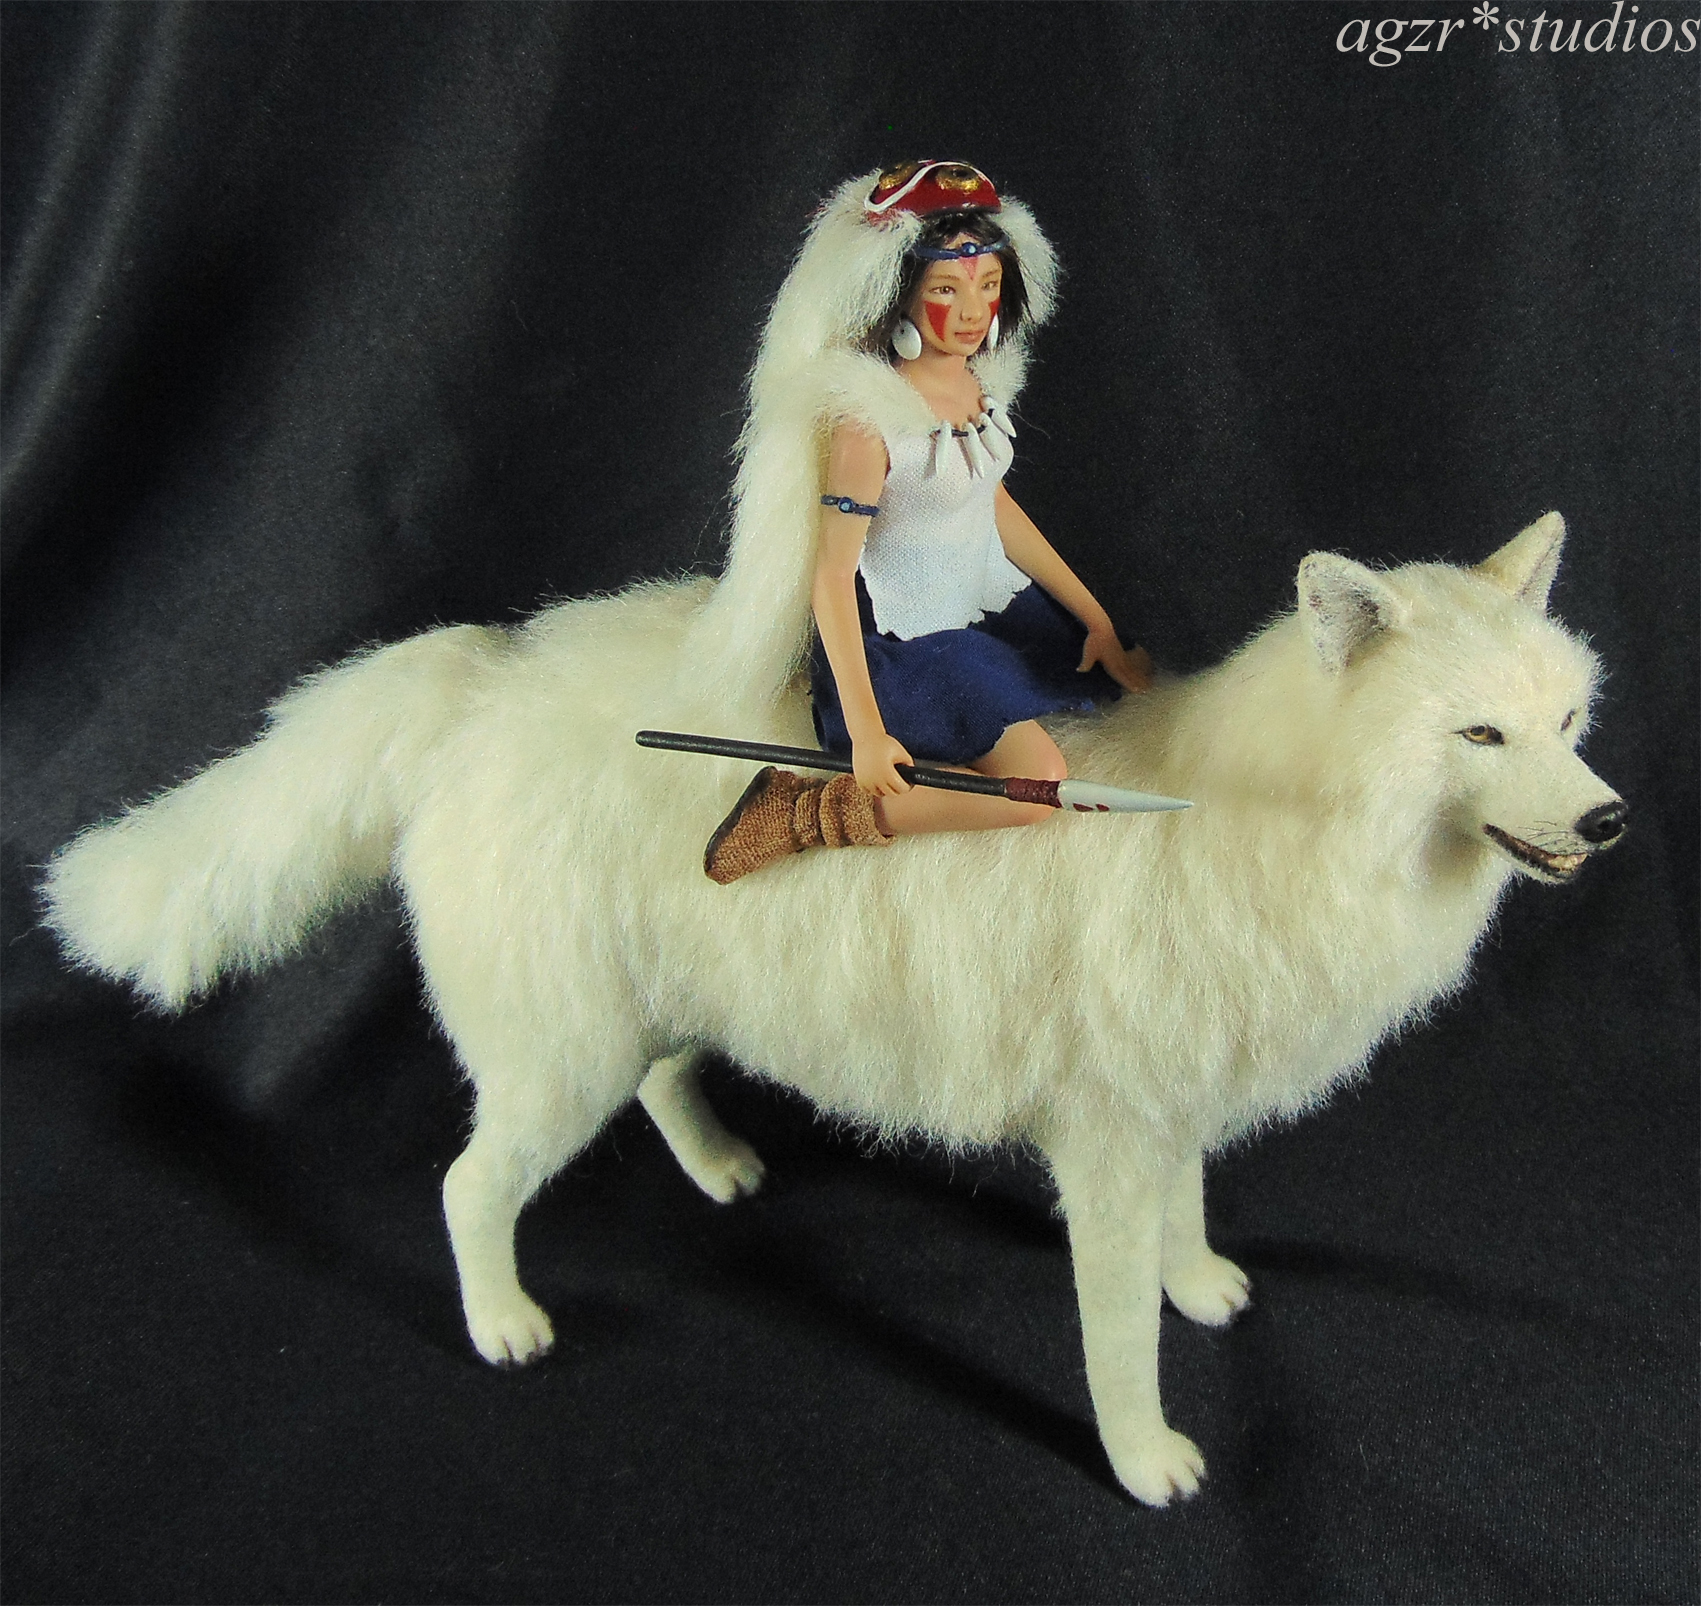 Princess Mononoke Art Doll Diorama Dollhouse Miniature 1:12 Scale Wolf